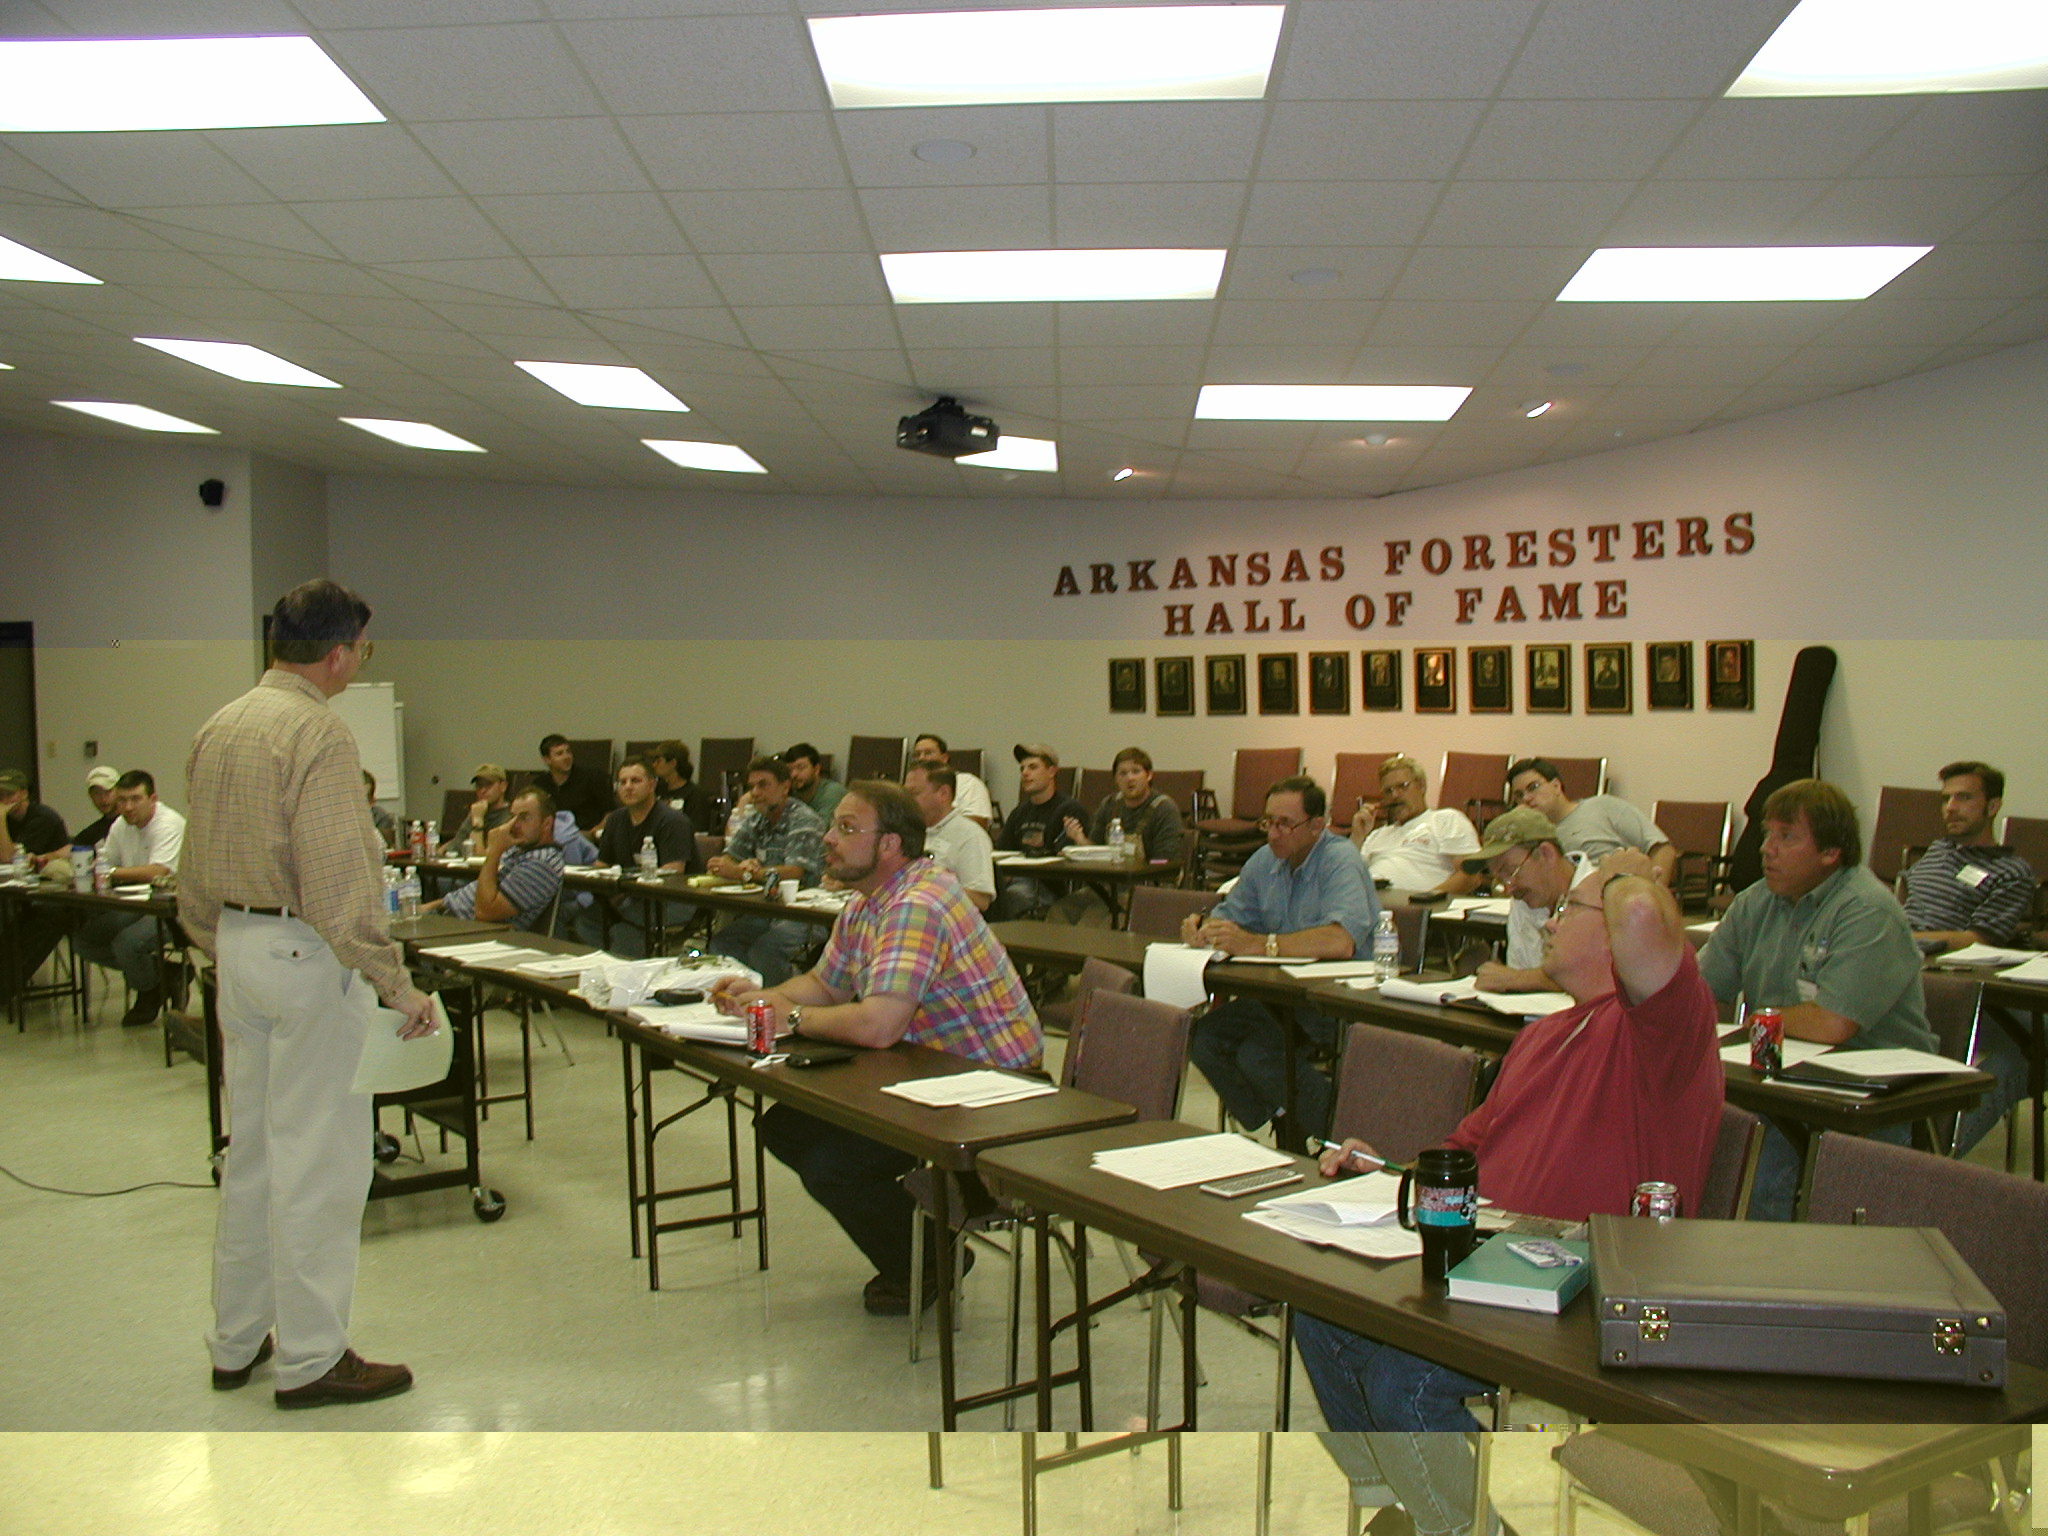 Indoor continuing education meeting in classroom setting in Arkansas